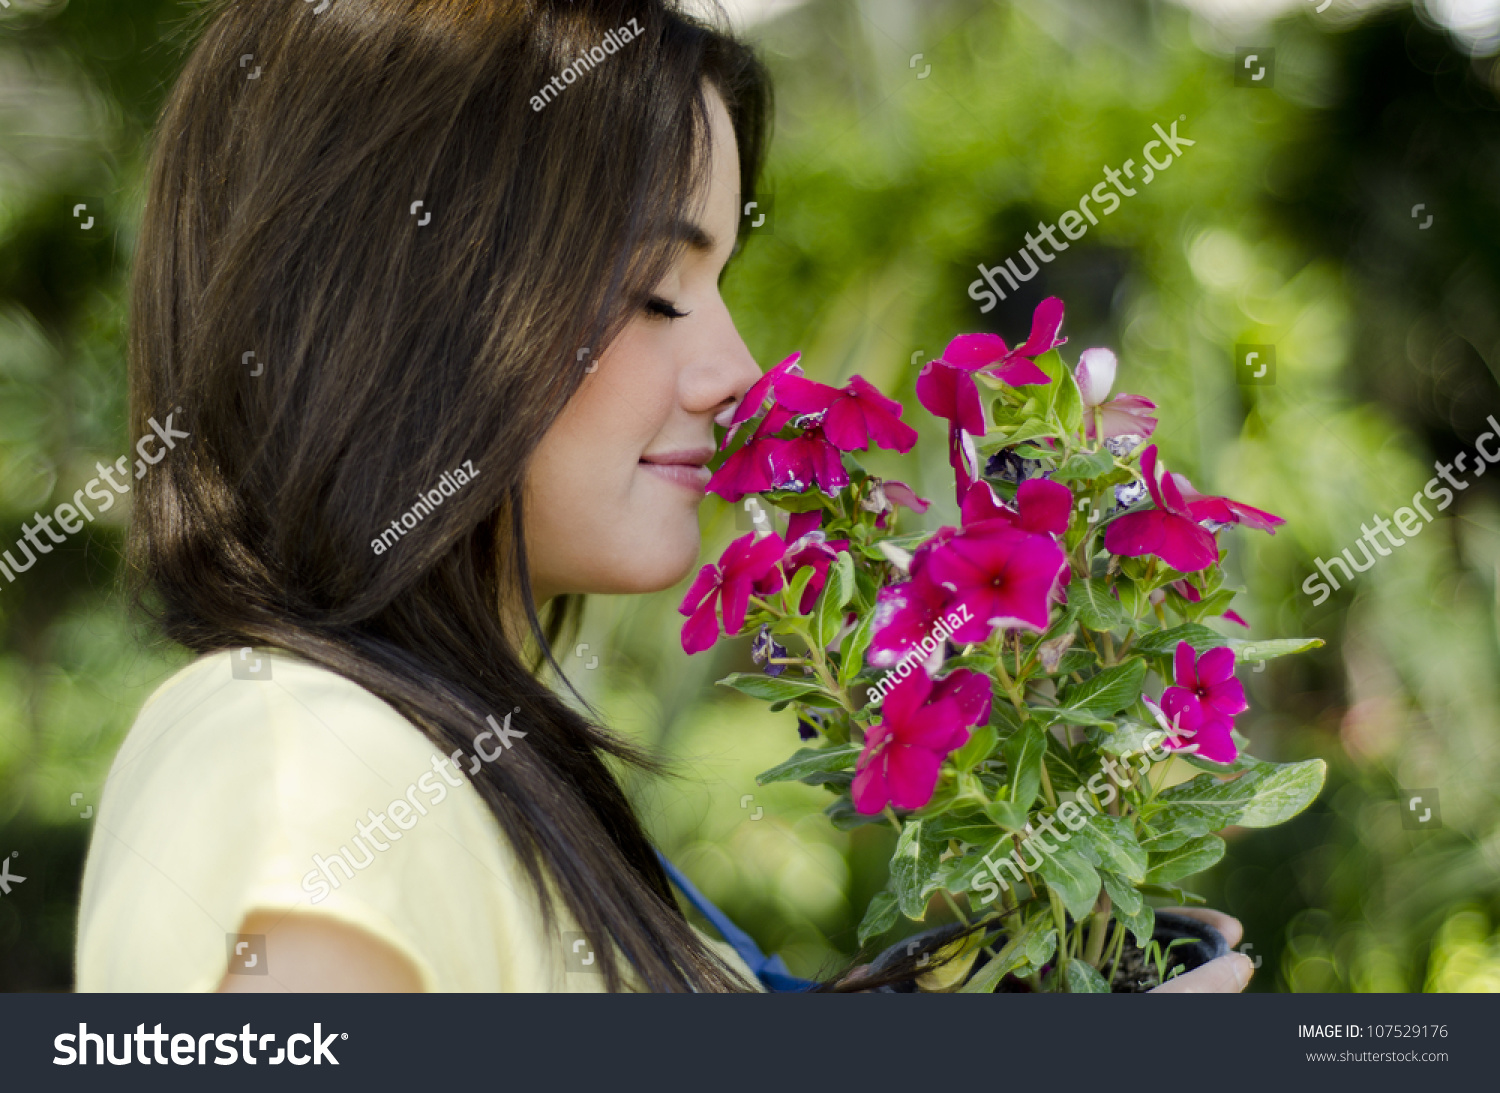 cute girl smelling flowers garden stock photo (royalty free